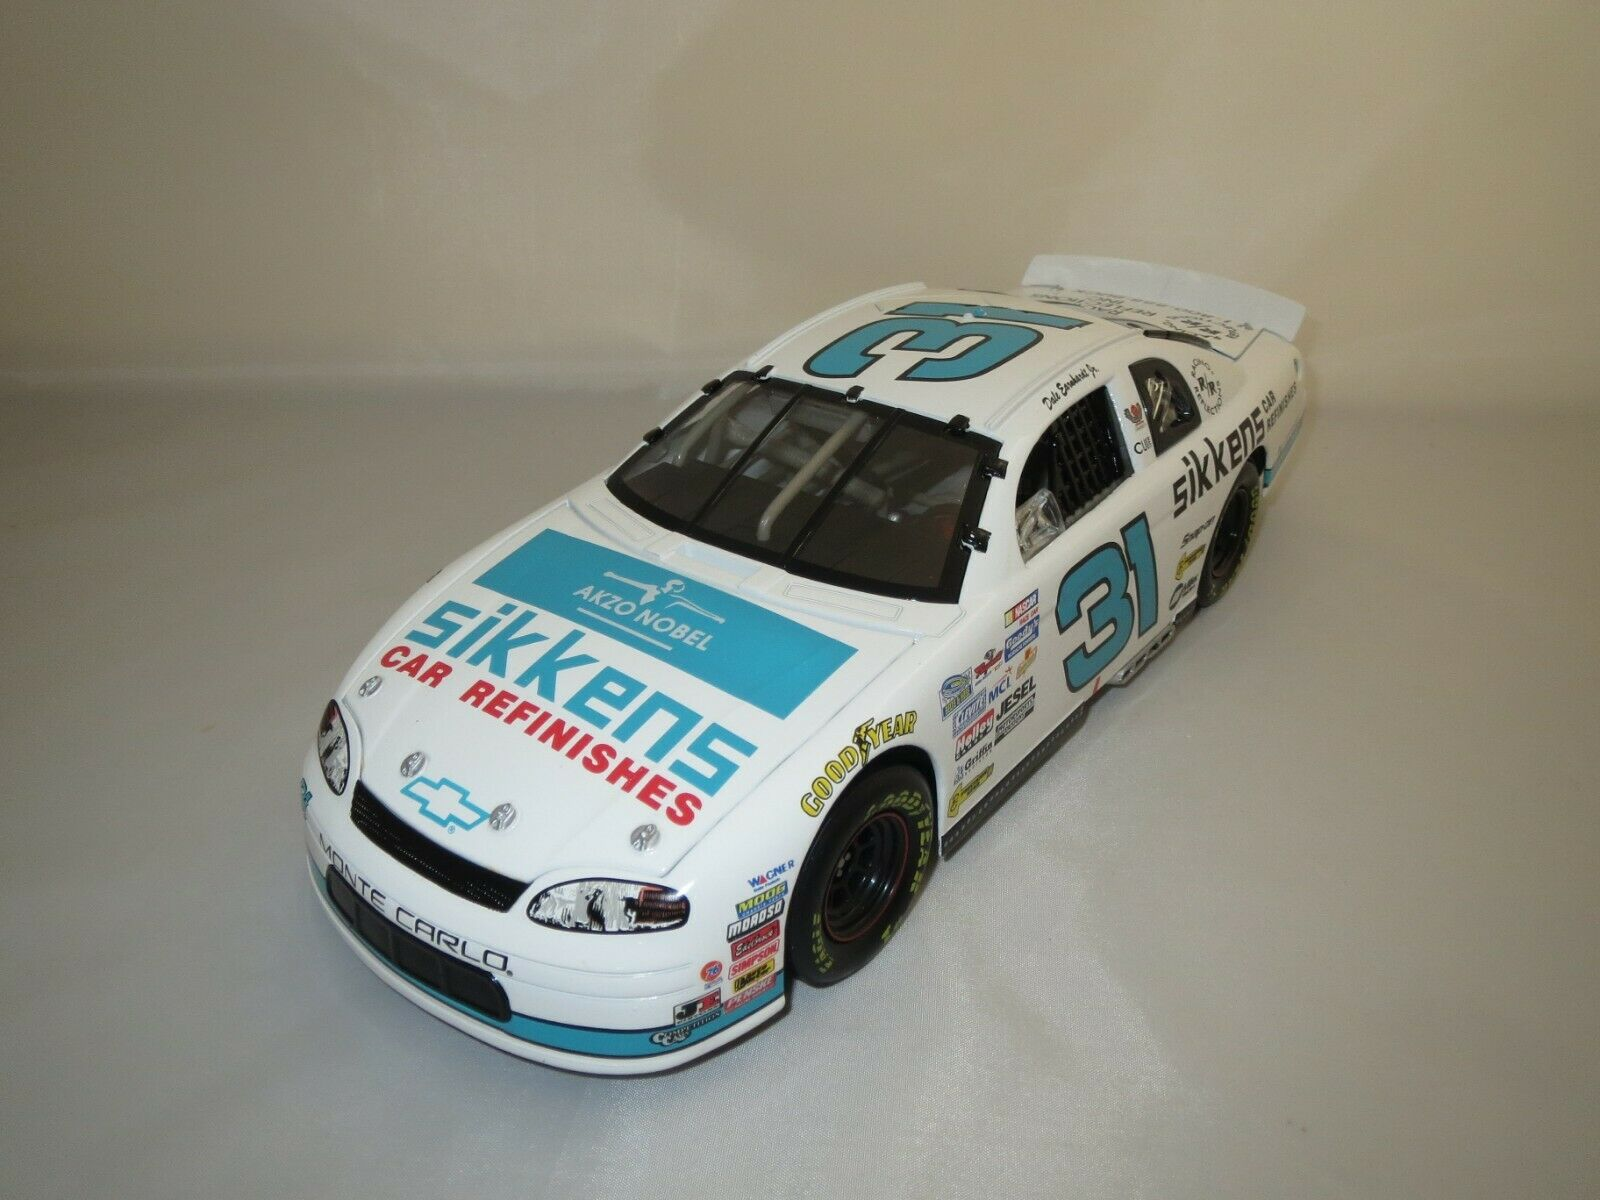 Action Performance  Nascar  Item 220721  Dale  Earnhardt  Jr. Sikkens   31  | Schön In Der Farbe